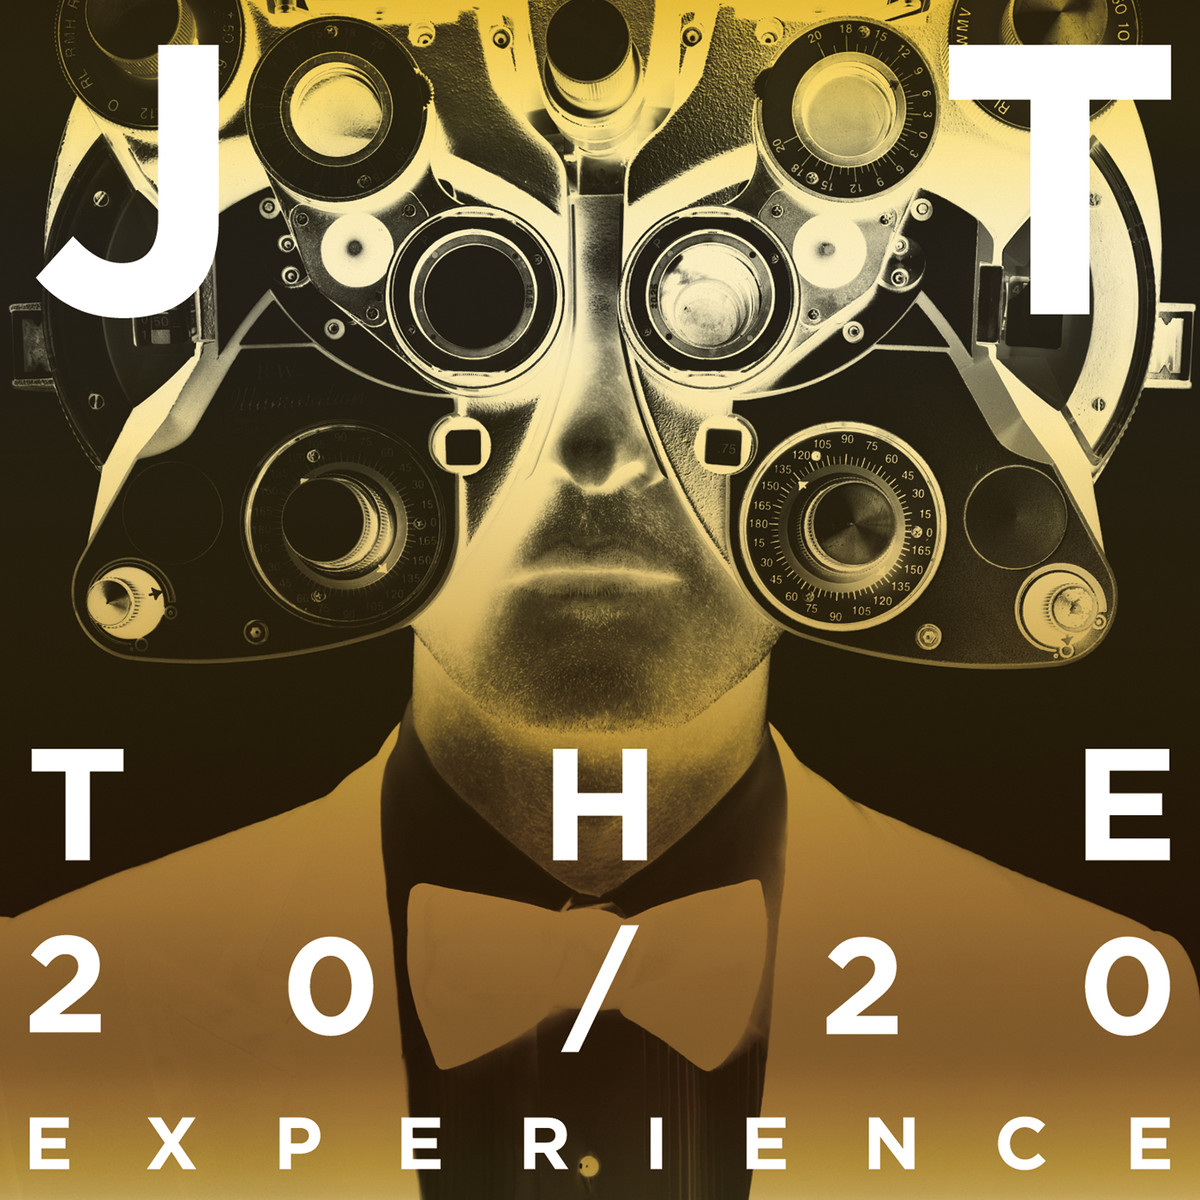 top 25 albums of 2013 15 justin timberlake the 20 20 experience the complete experience. Black Bedroom Furniture Sets. Home Design Ideas